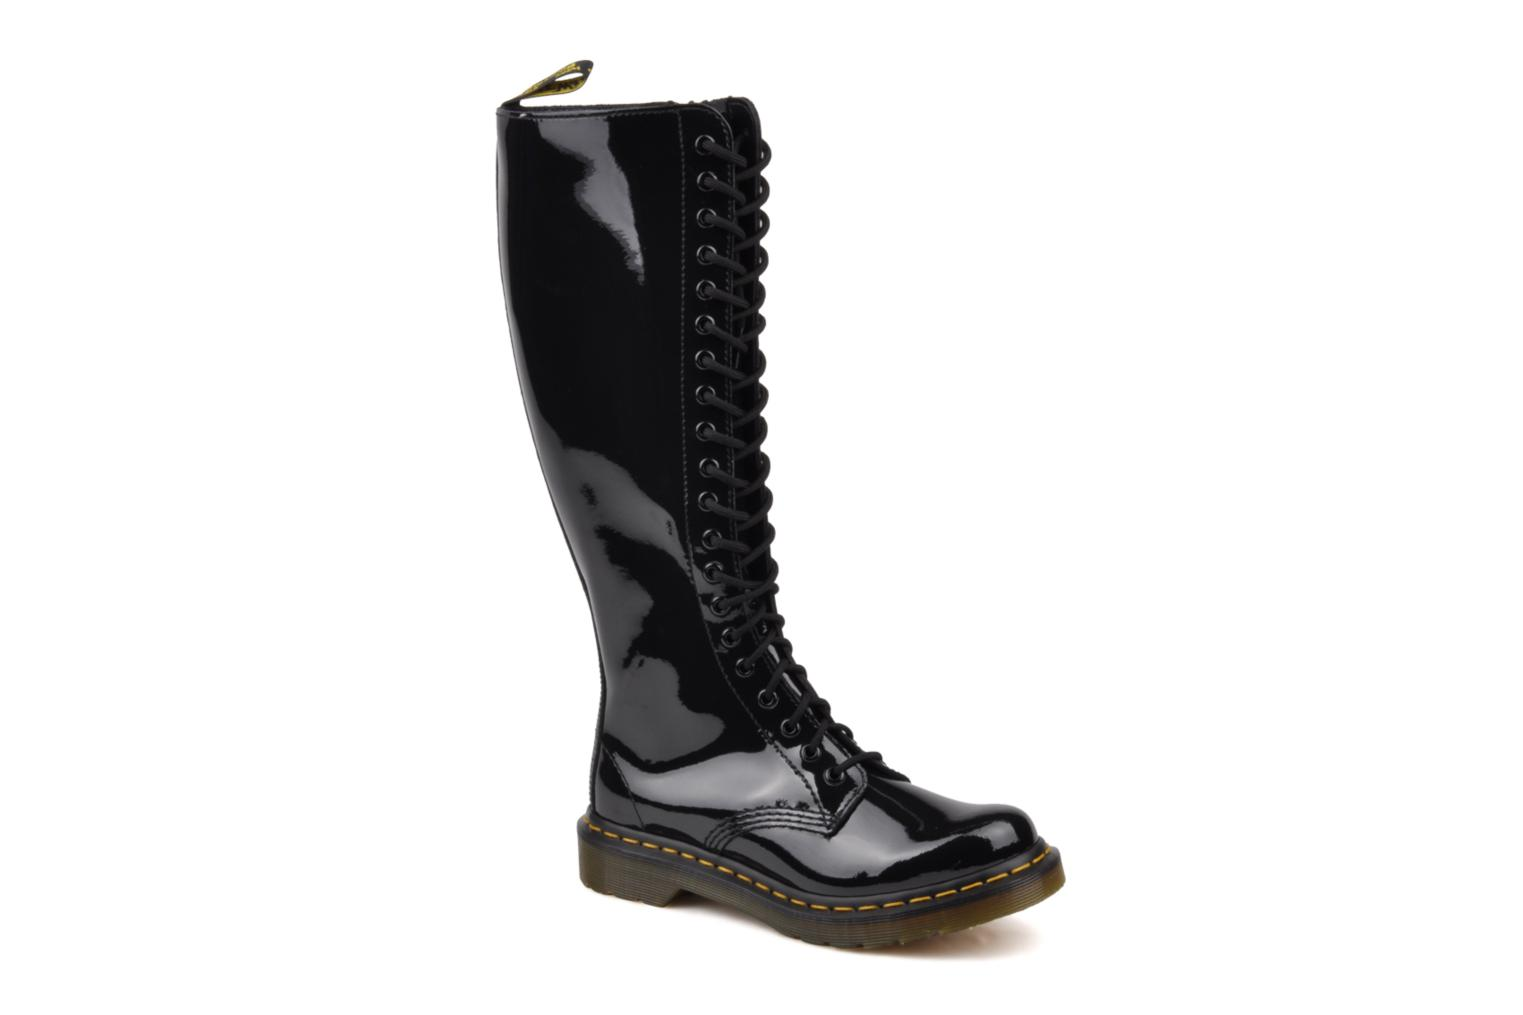 1b60 Z by Dr. Martens